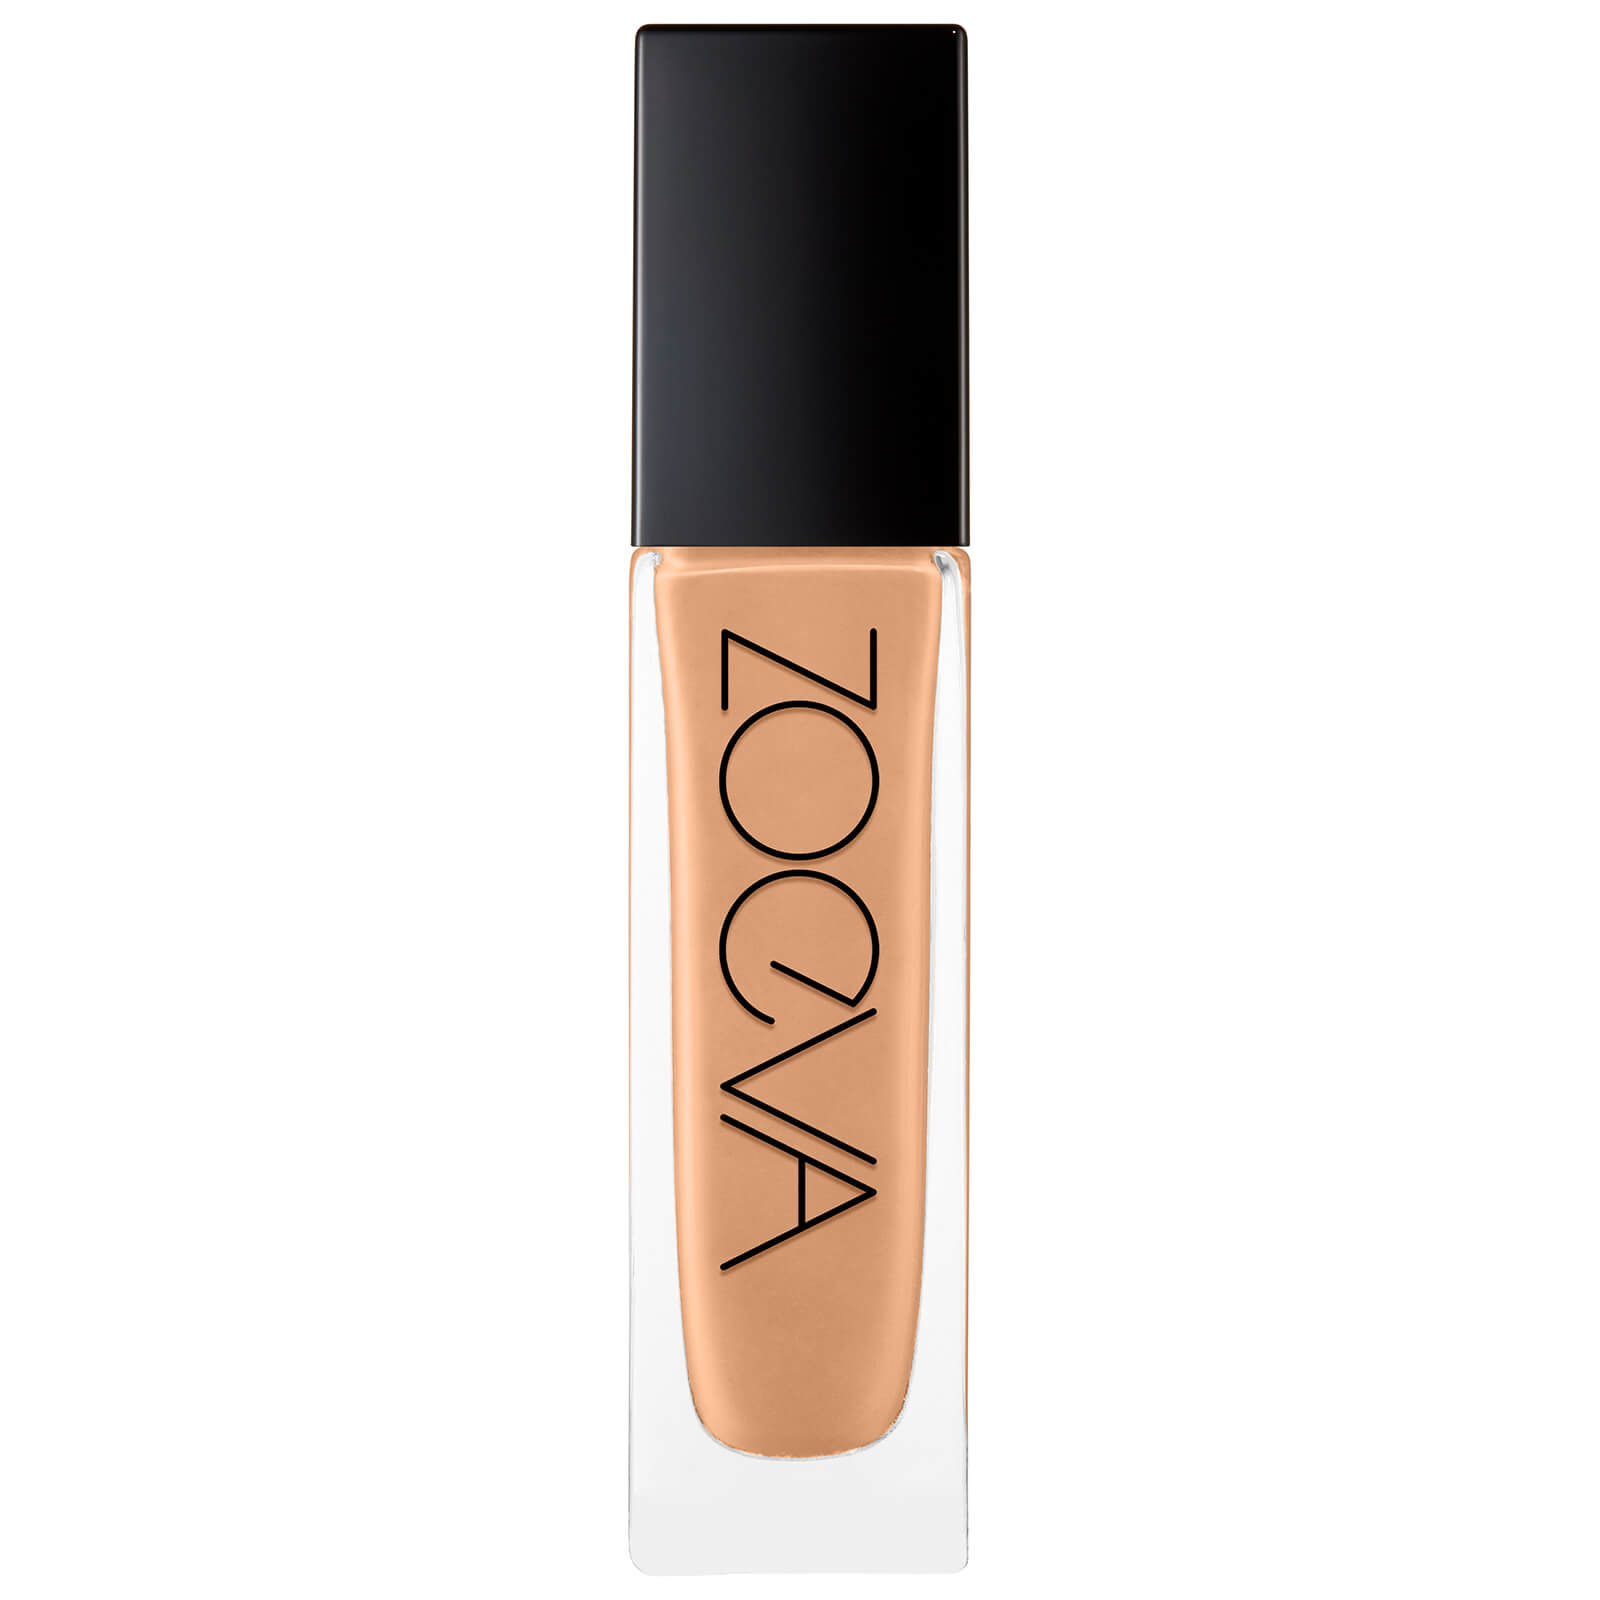 ZOEVA Authentik Skin Foundation 30ml (Various Shades) - 210N Gifted